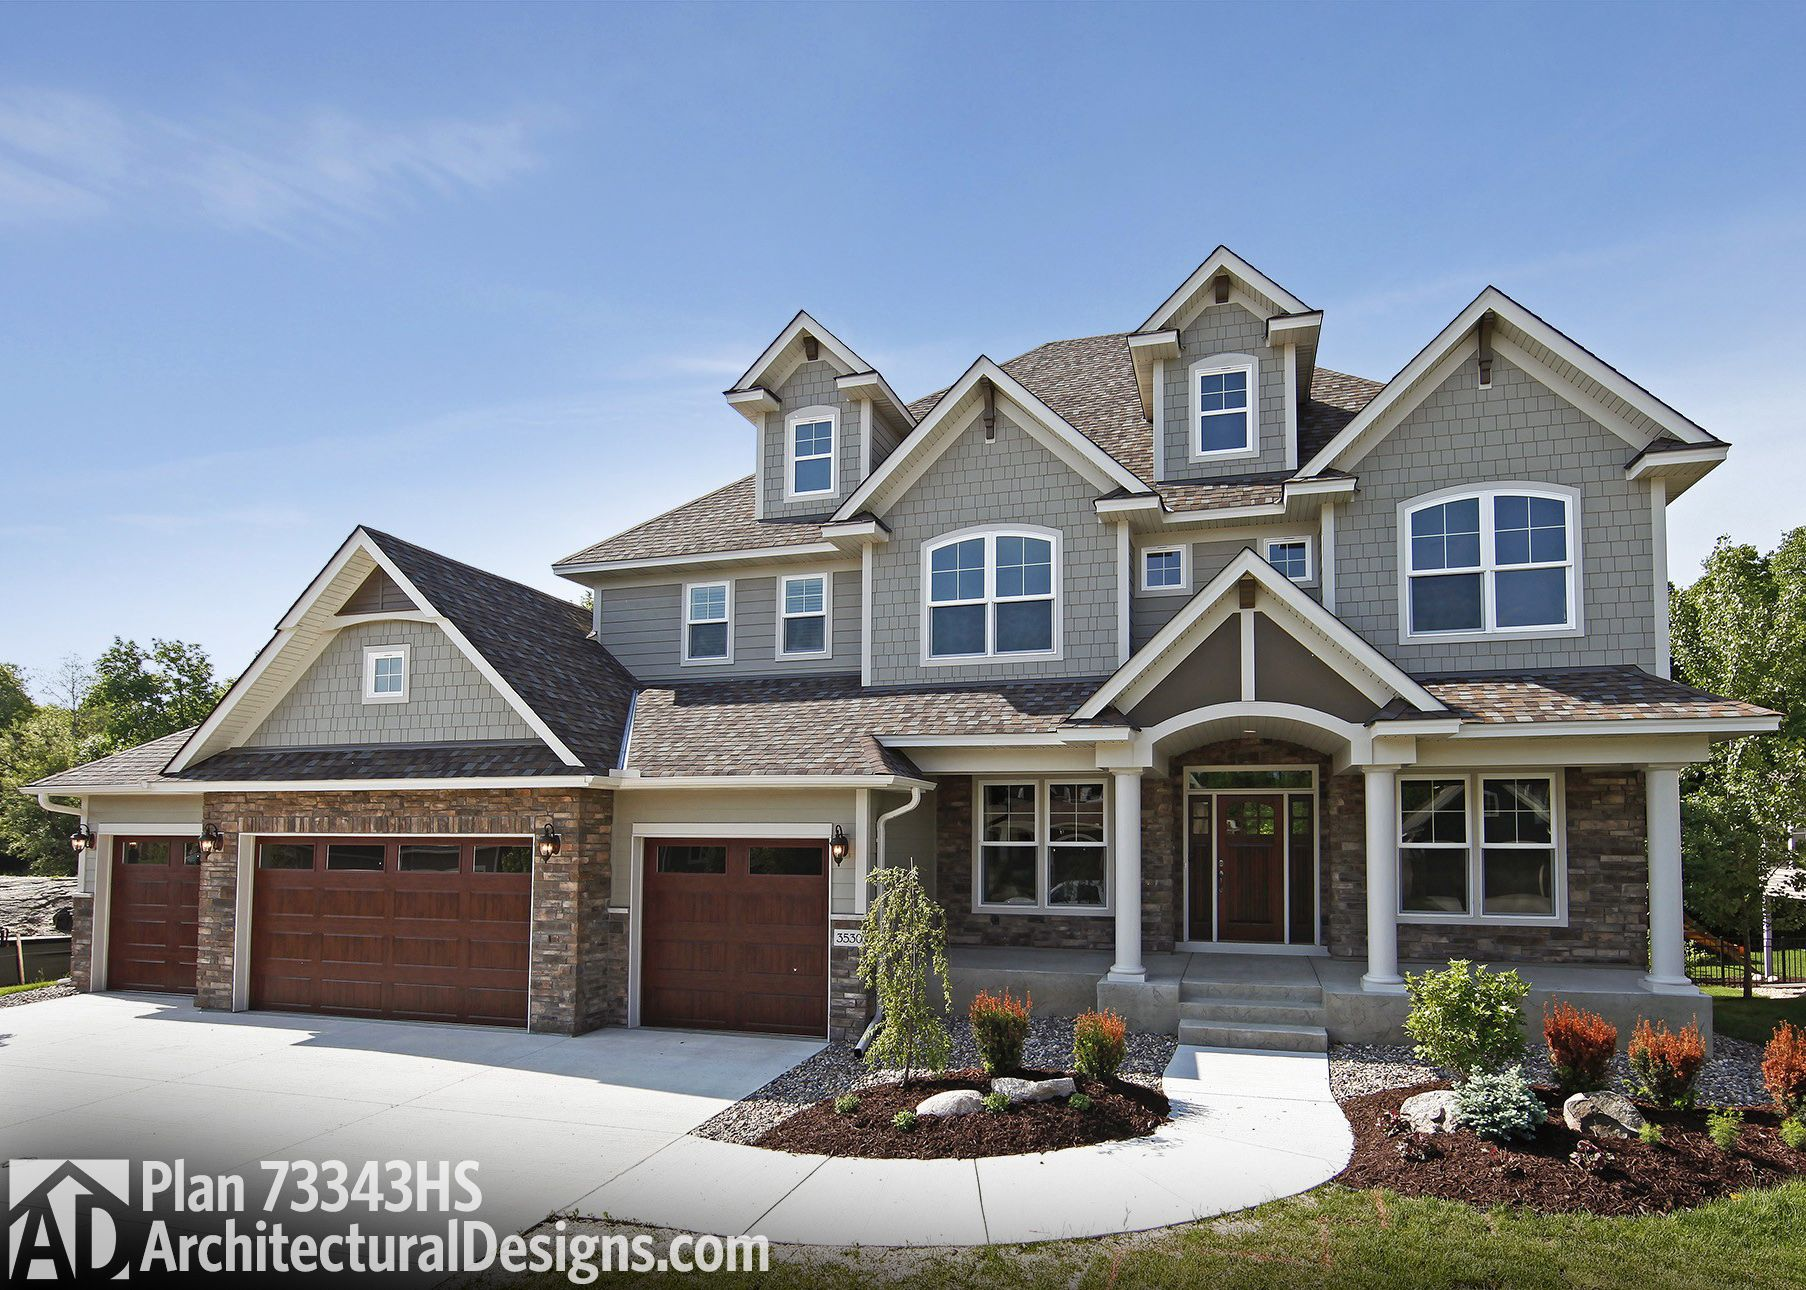 Plan 73343HS: Storybook House Plan With 4 Car Garage